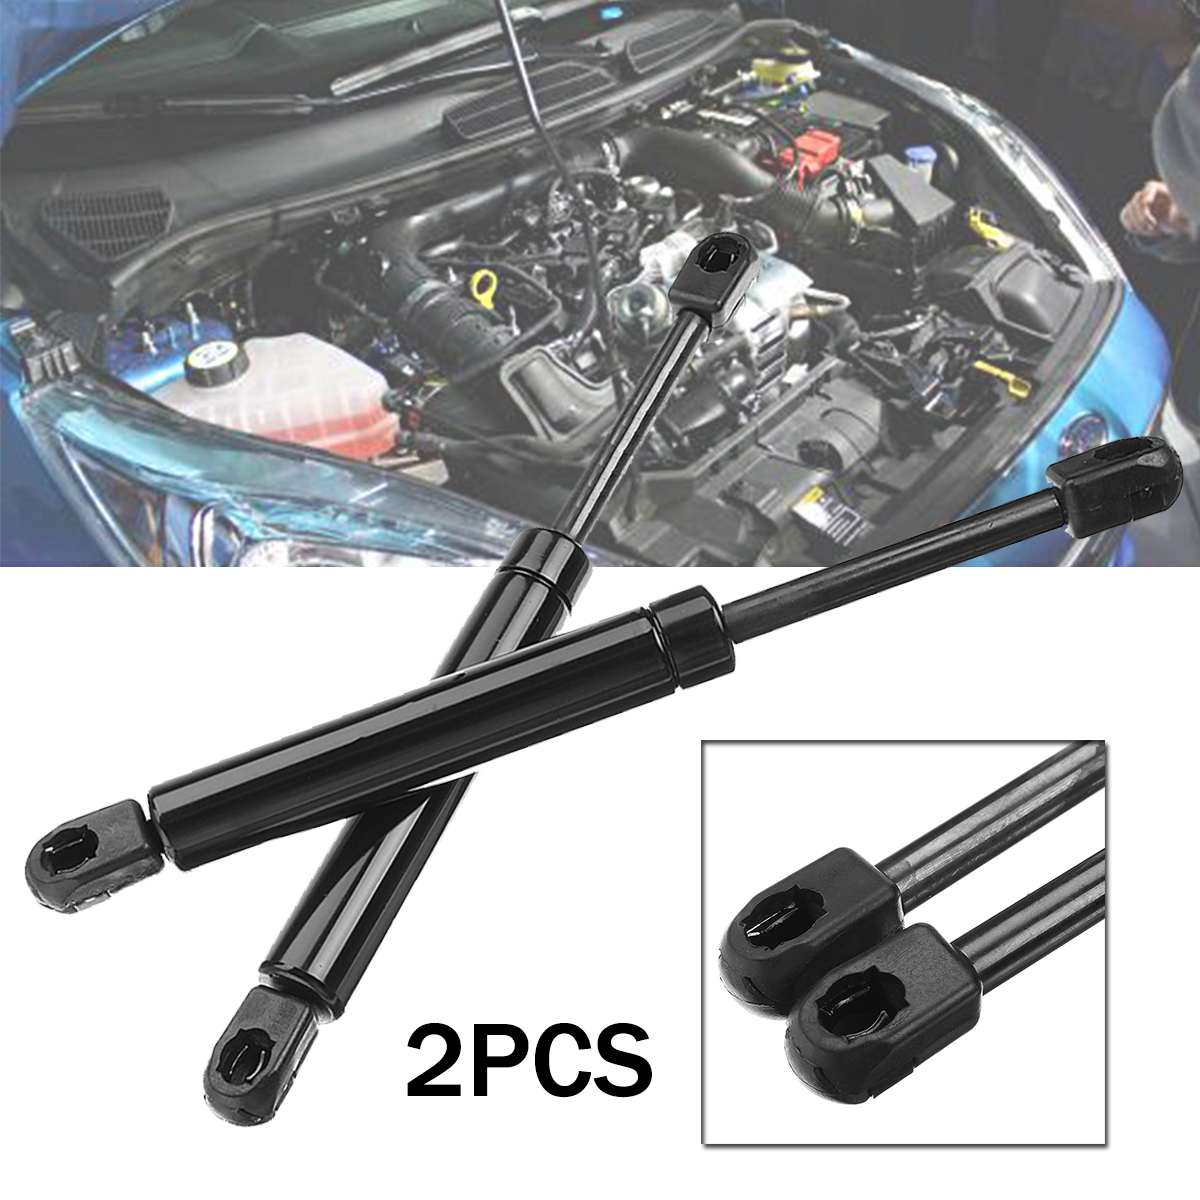 2Pcs For Ford for Mondeo MK3 2000 2001 2002 2003 2004 2005 2006 2007 Car-Styling Bonnet Gas Springs Struts Hood Shock Lifters